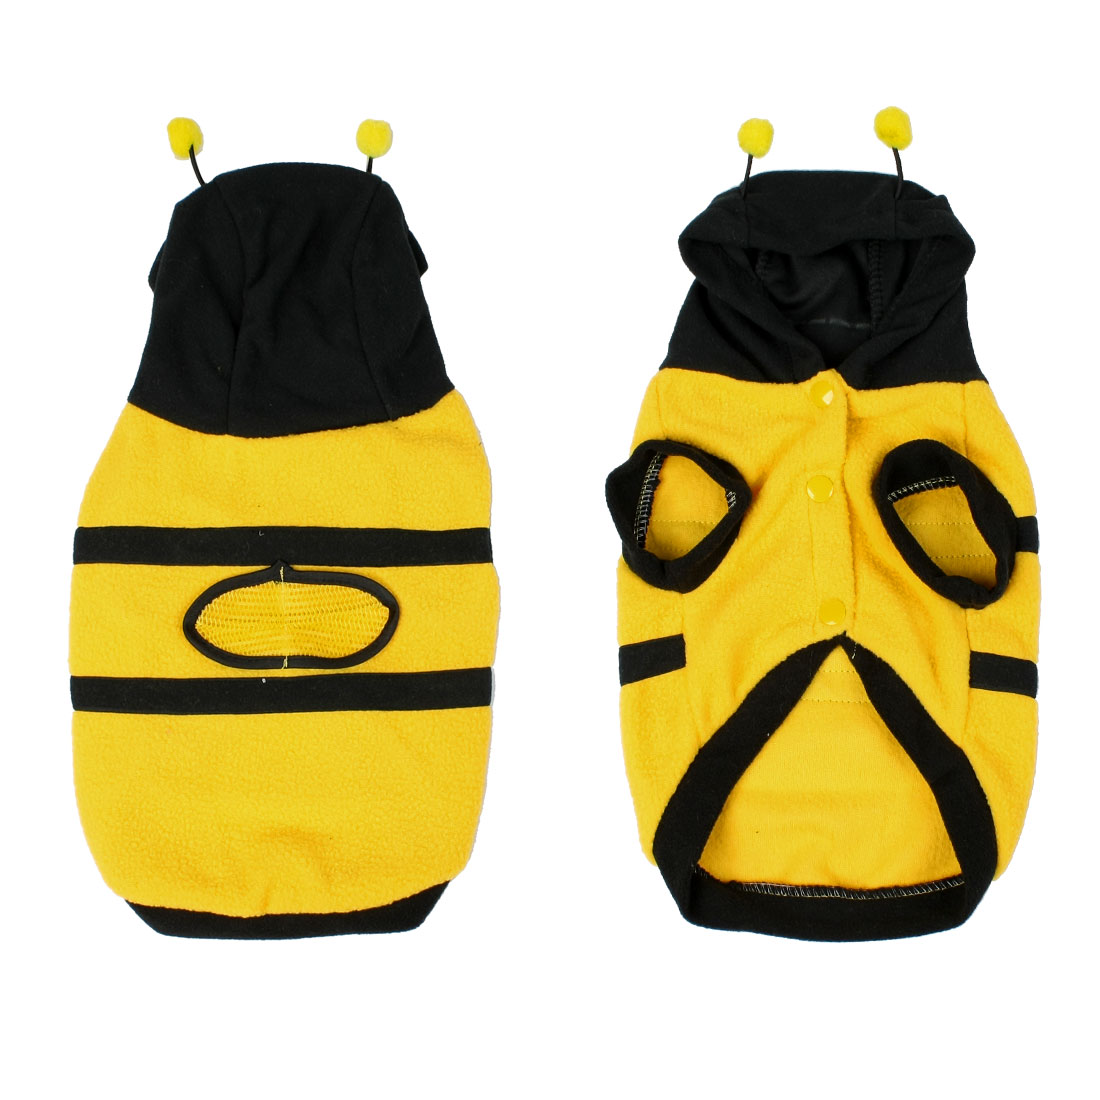 Xmas Yellow Black Fleece Bee Design Hooded Poodle Dog Coat Pet Clothes XL